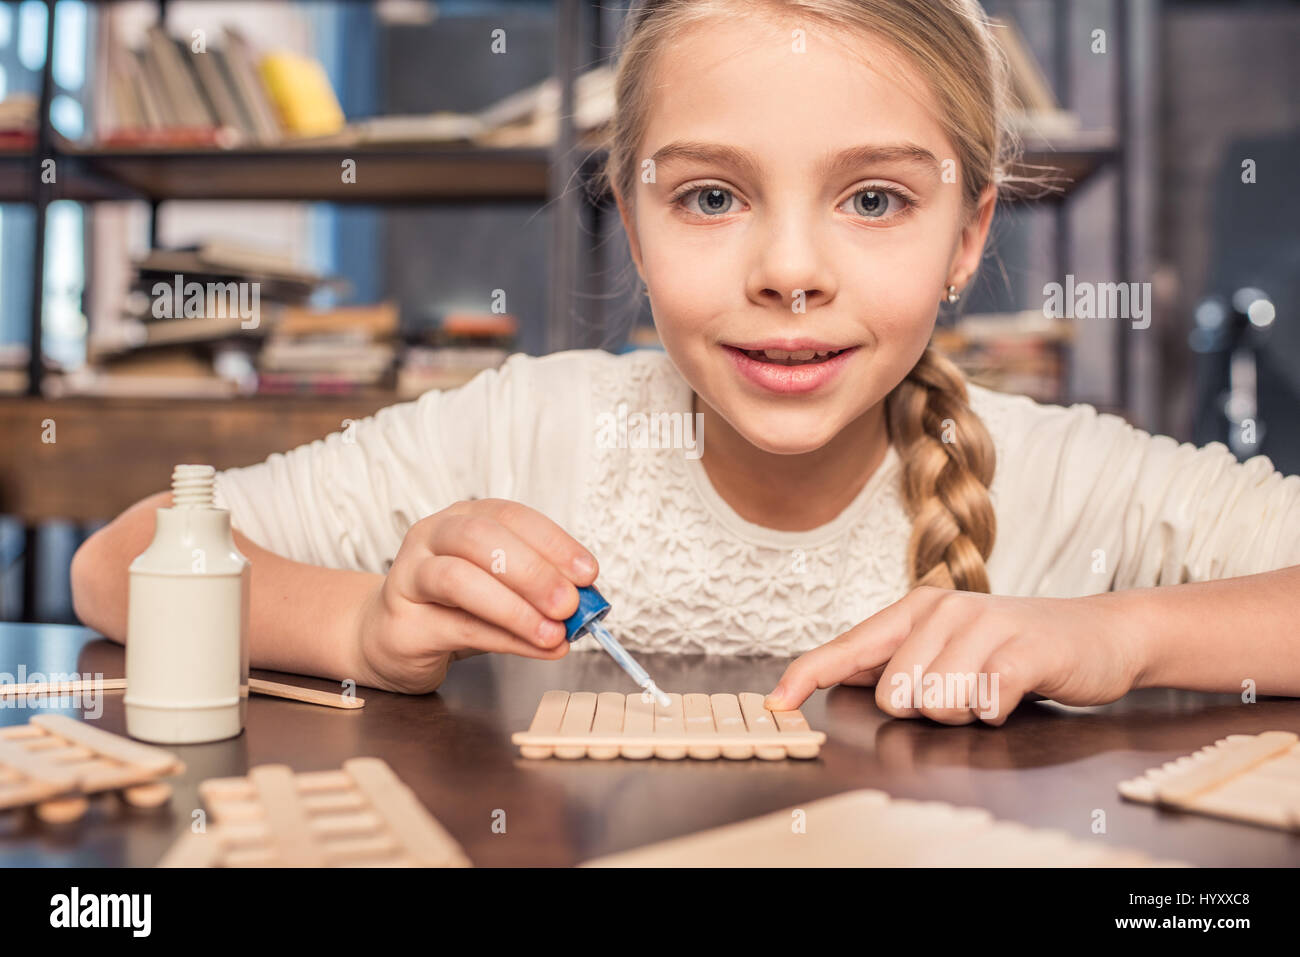 Smiling little girl handcrafting with ice cream sticks and glue - Stock Image